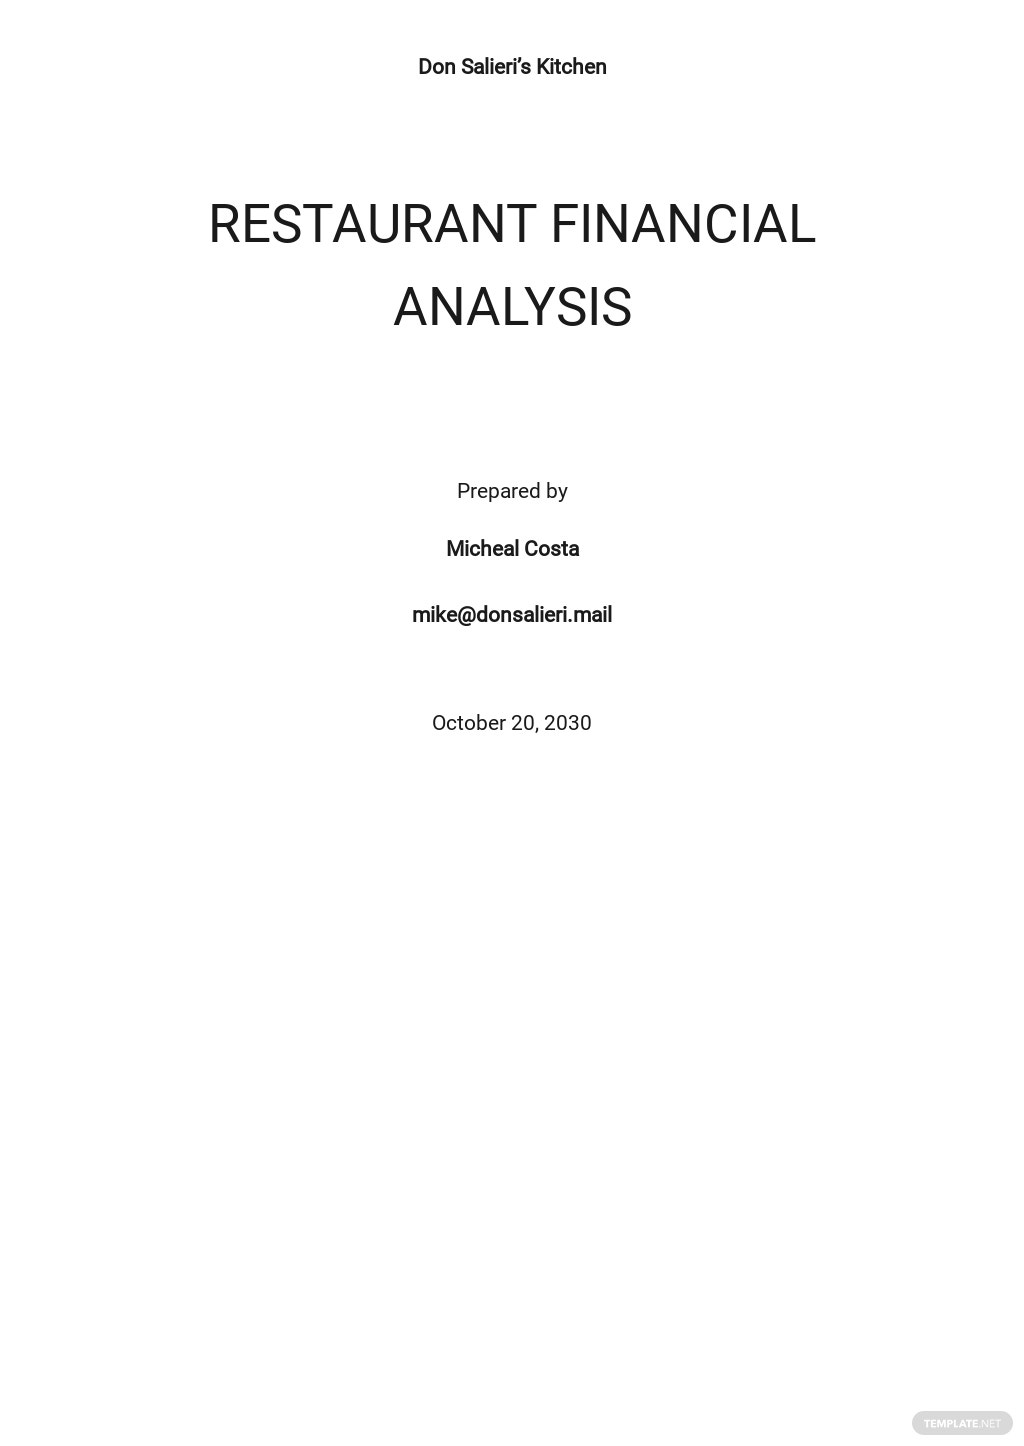 Restaurant Financial Analysis Template